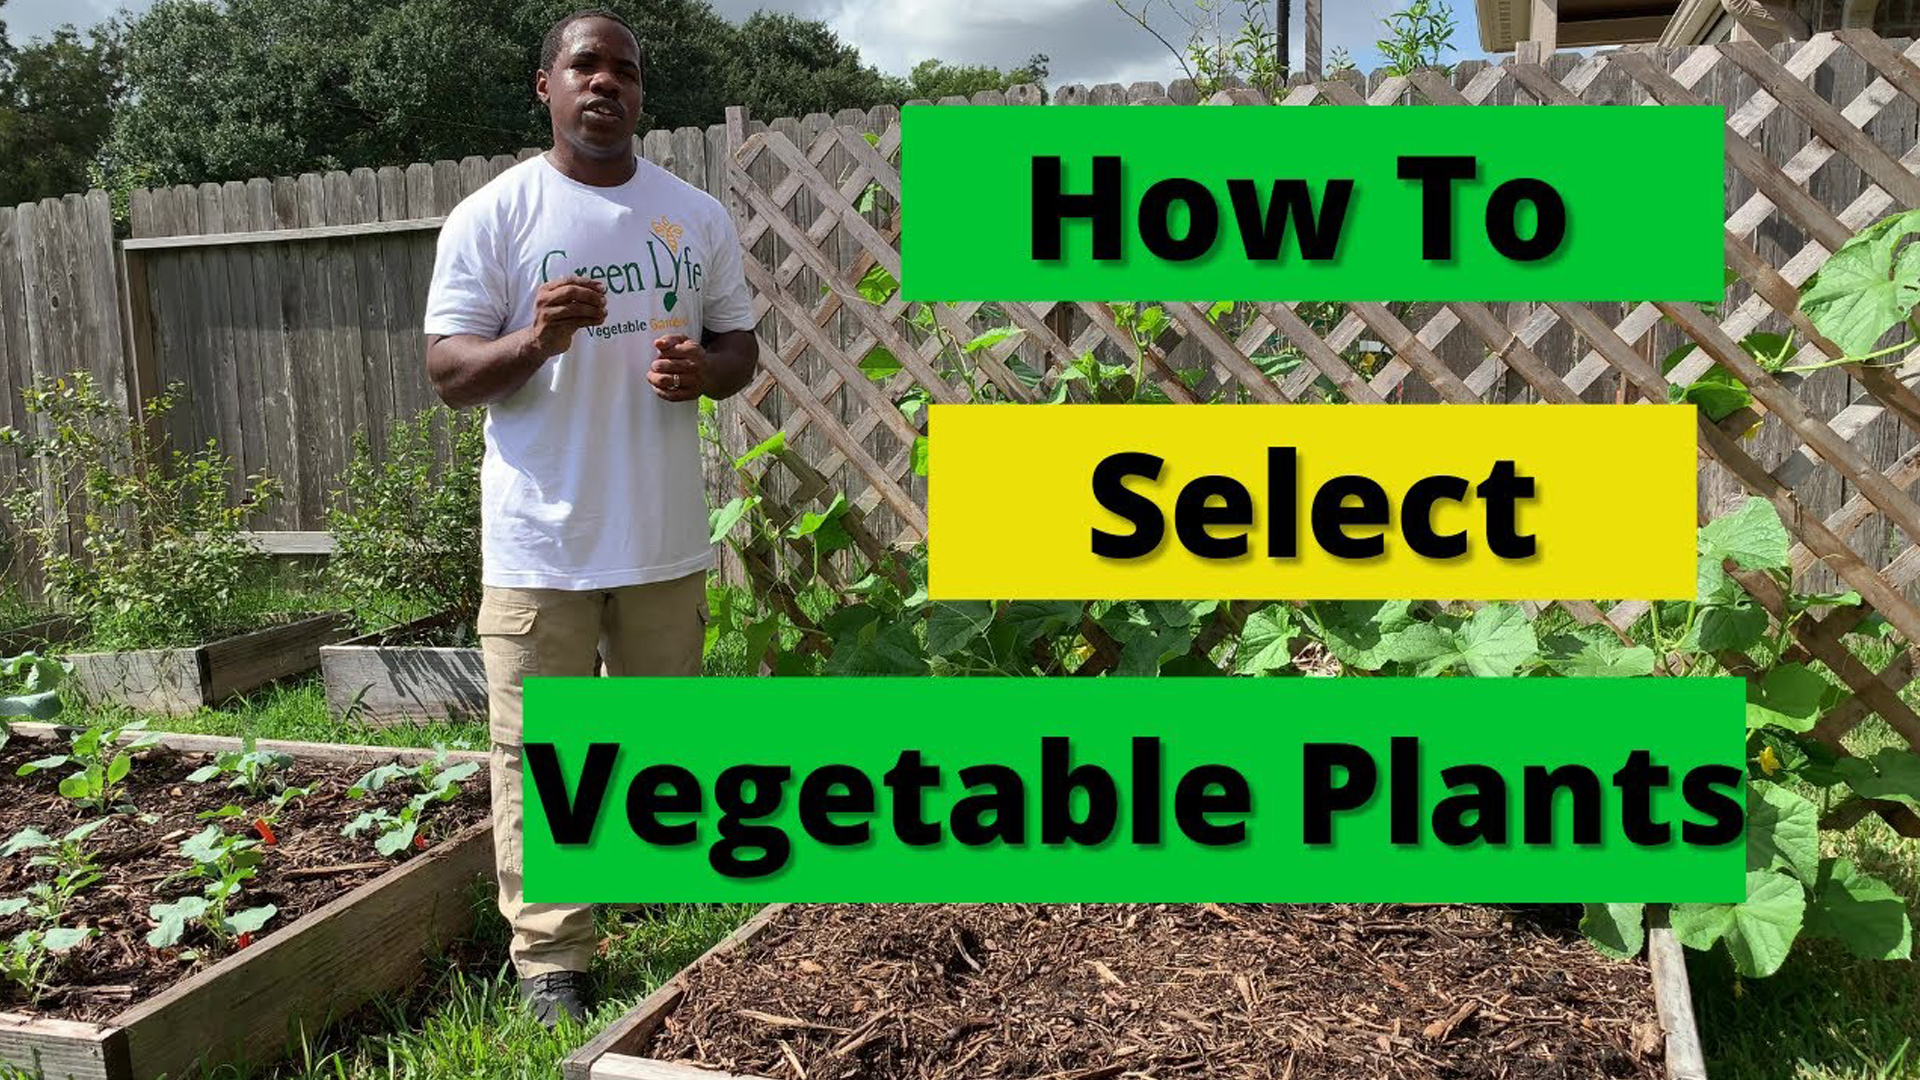 How To Select Vegetable Plants